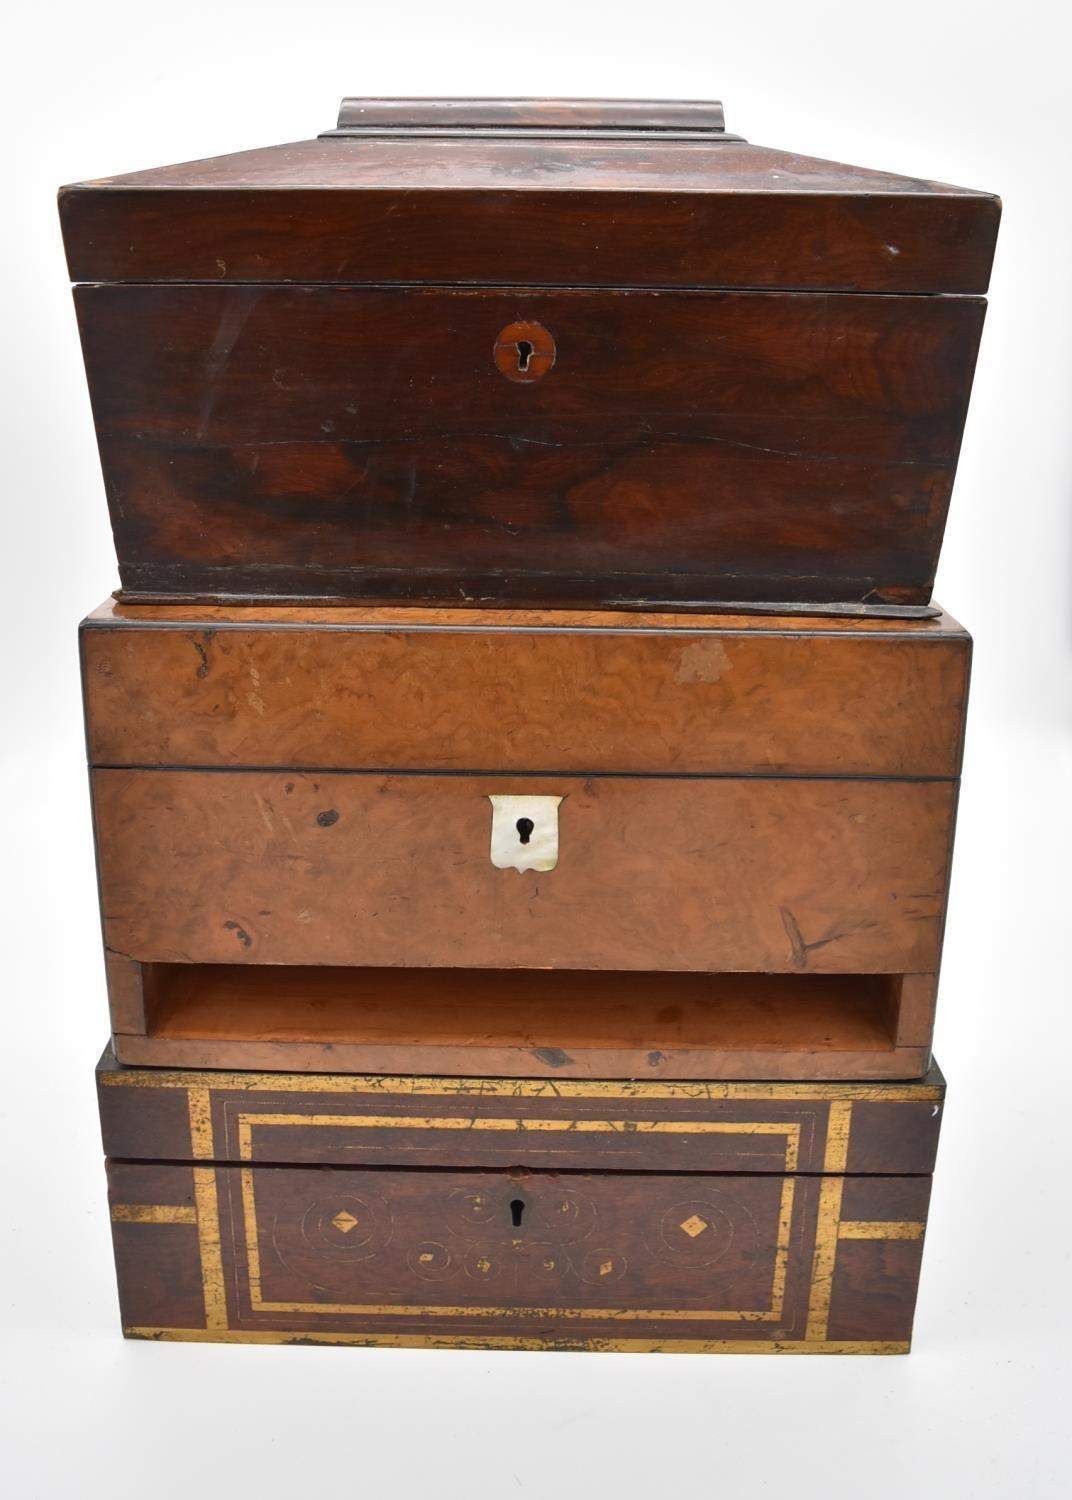 A 19th century burr walnut fitted vanity box (drawer missing) with mother of pearl shield shaped